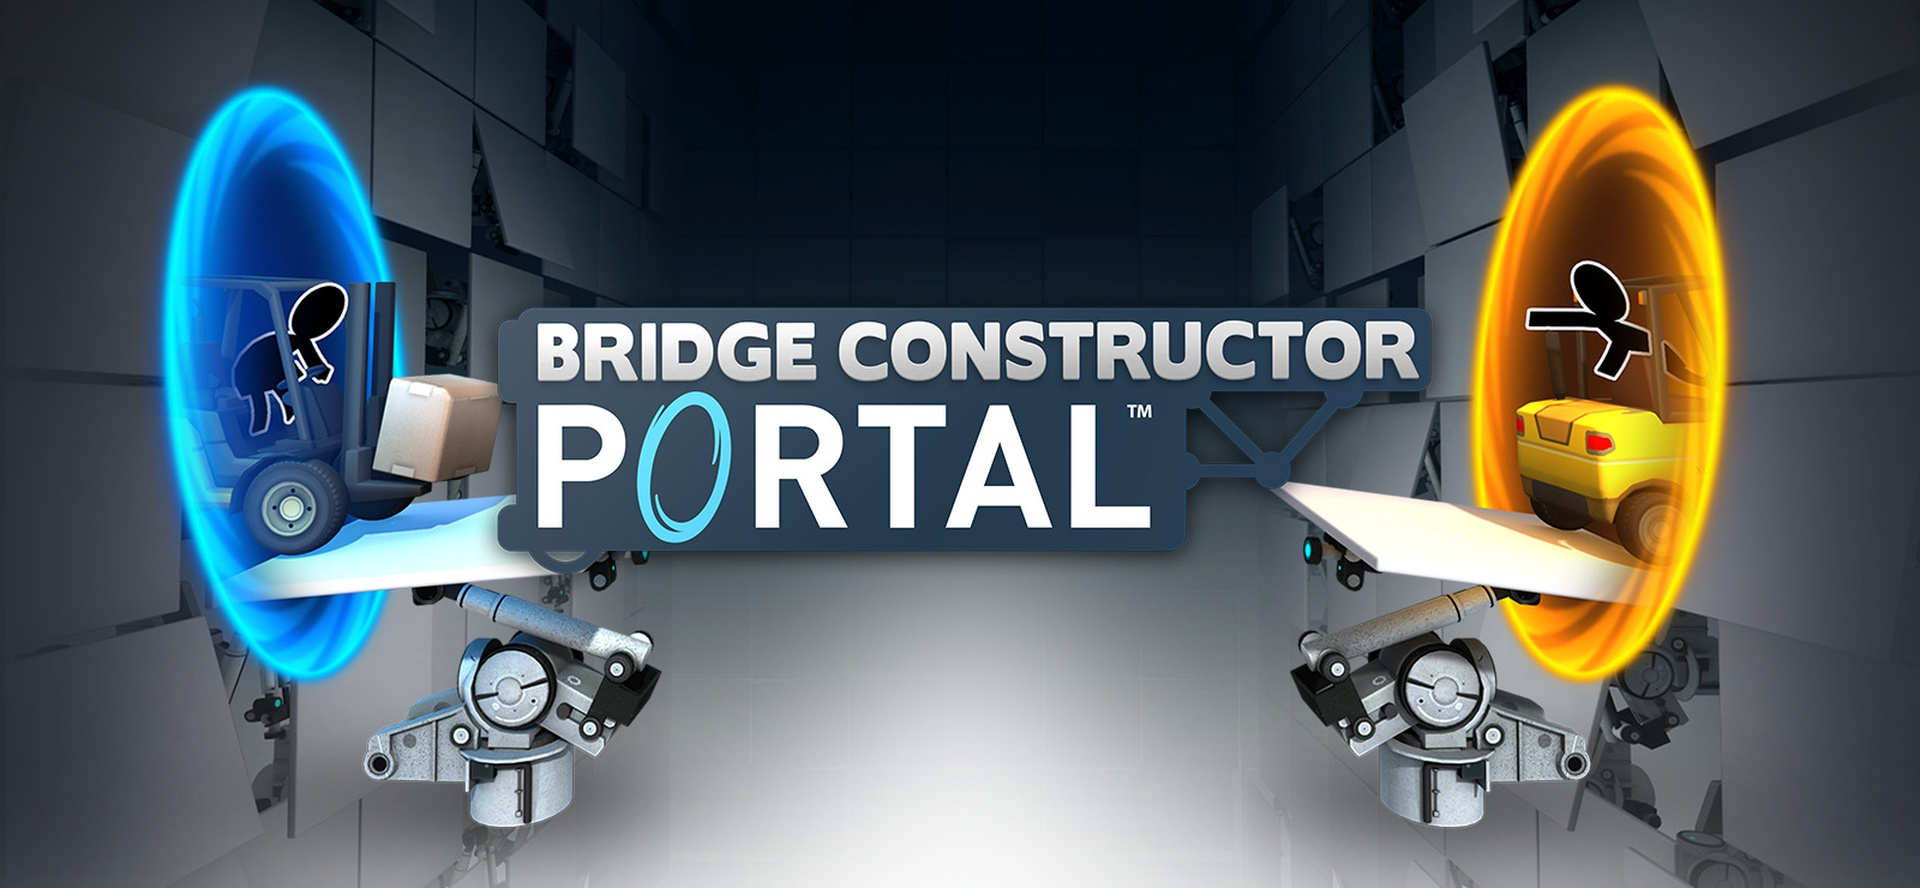 Bridge Constructor Portal Video